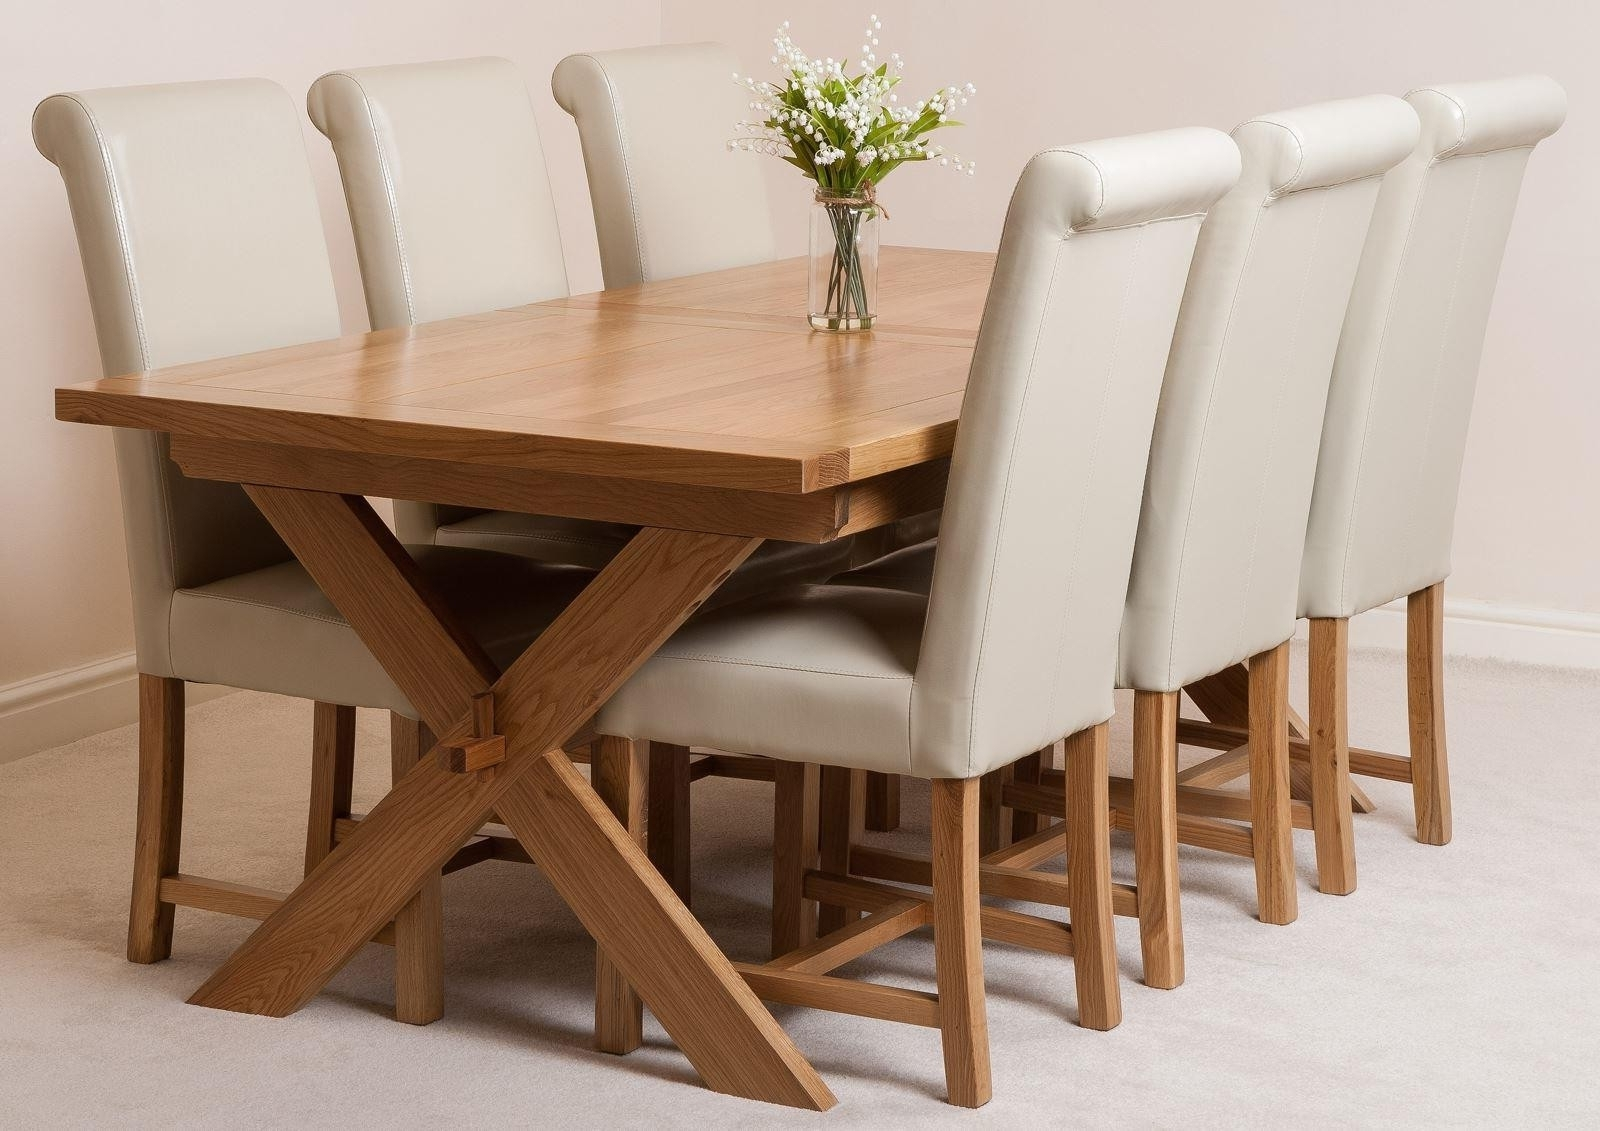 Oak Dining Tables And Fabric Chairs Intended For Preferred Vermont Dining Set With 6 Ivory Chairs (View 16 of 25)